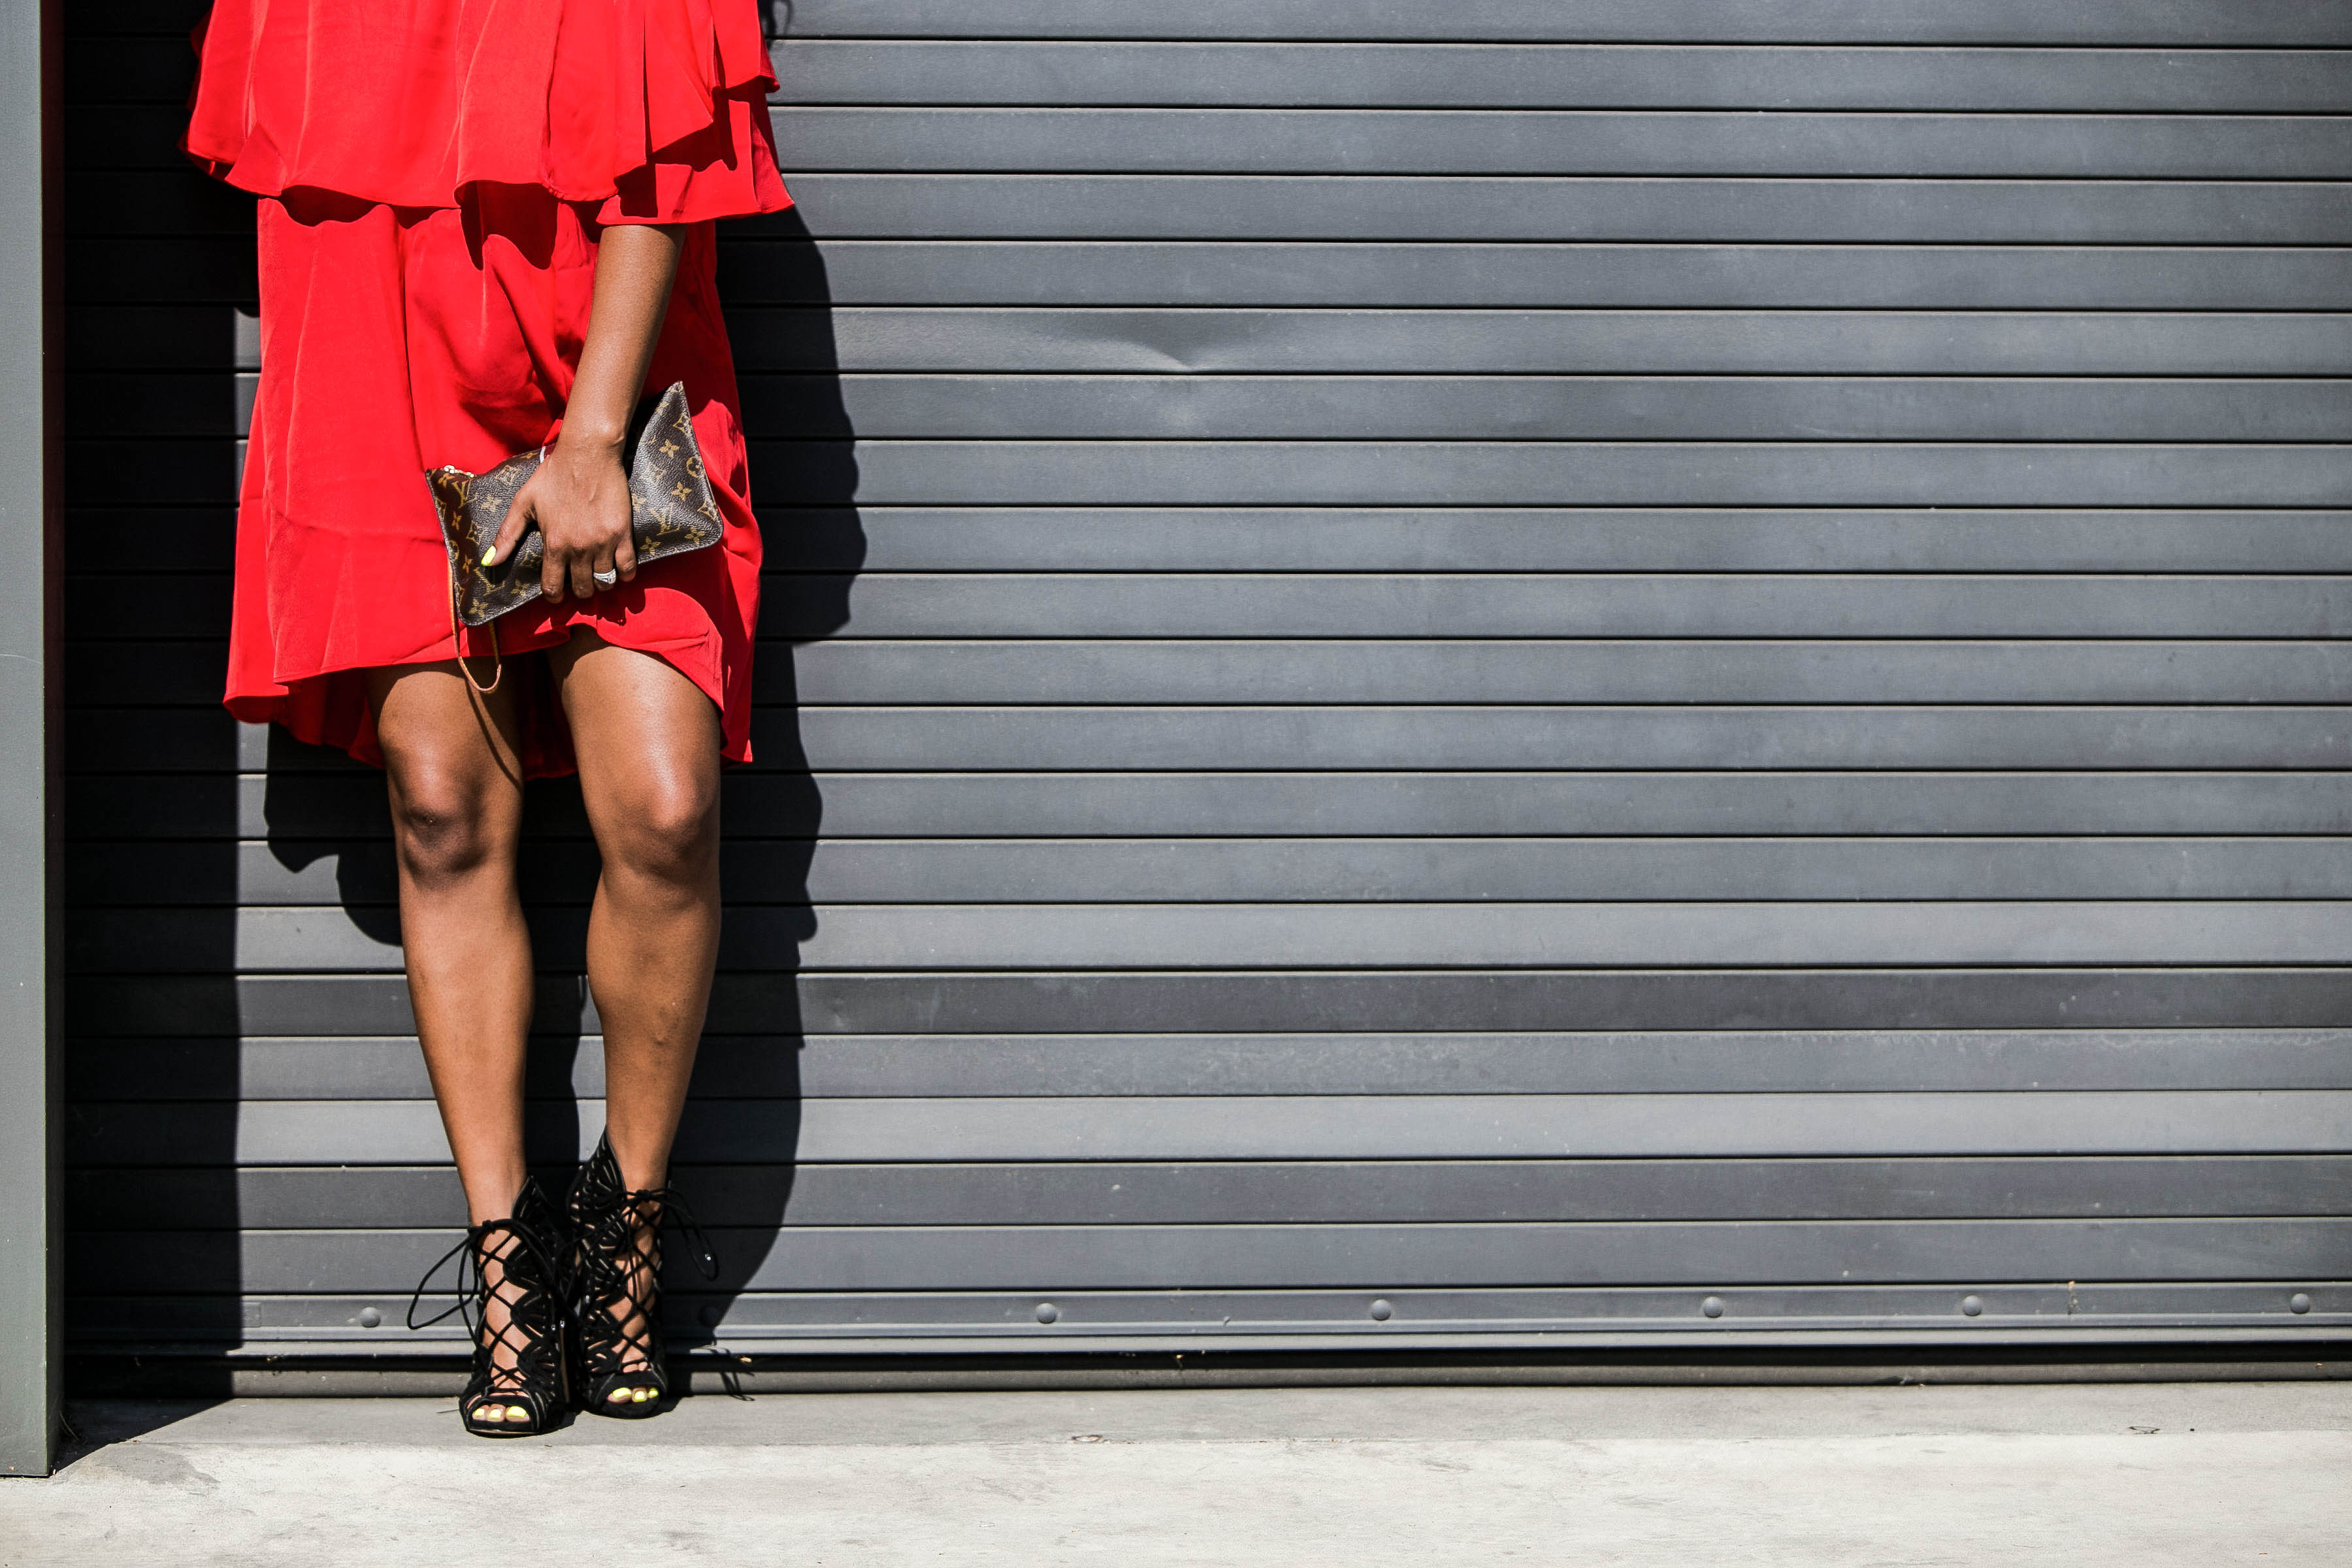 Details: Louis Vuitton, Zara, She Inside -https://thehautemommie.com/lady-in-the-red-dress/